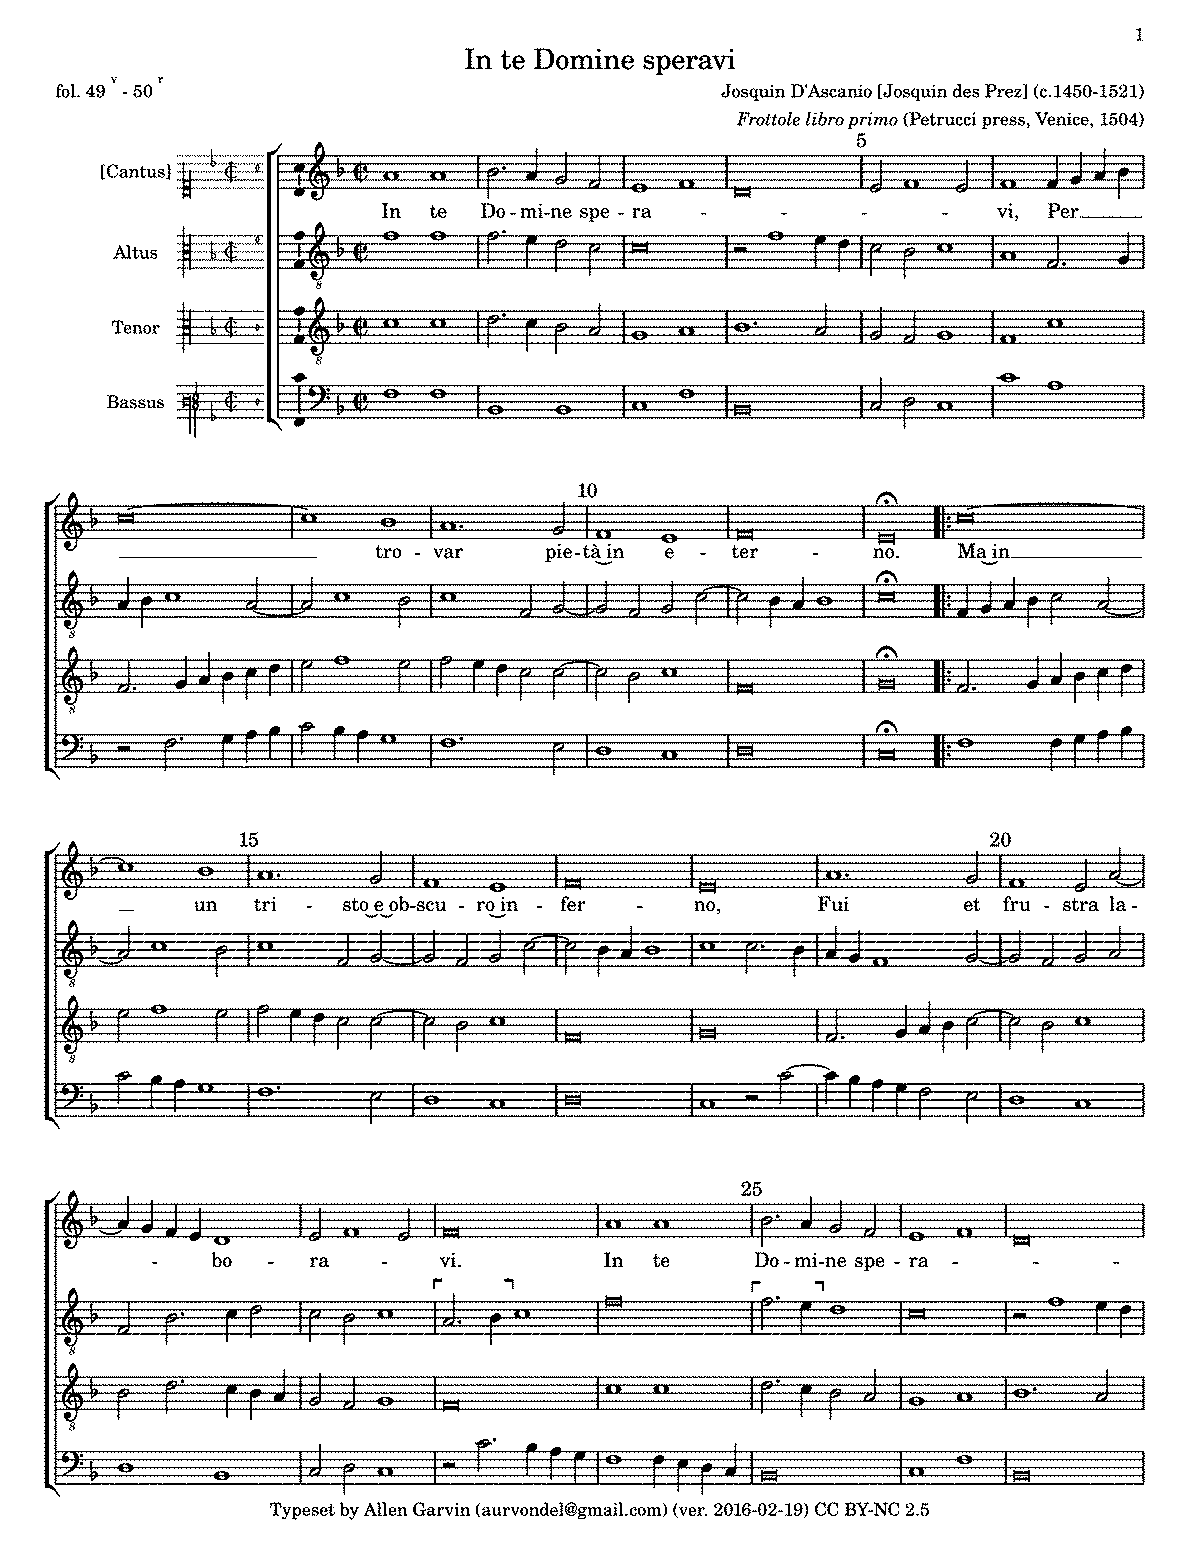 PMLP302232-50-in te domine speravi---0-score.pdf